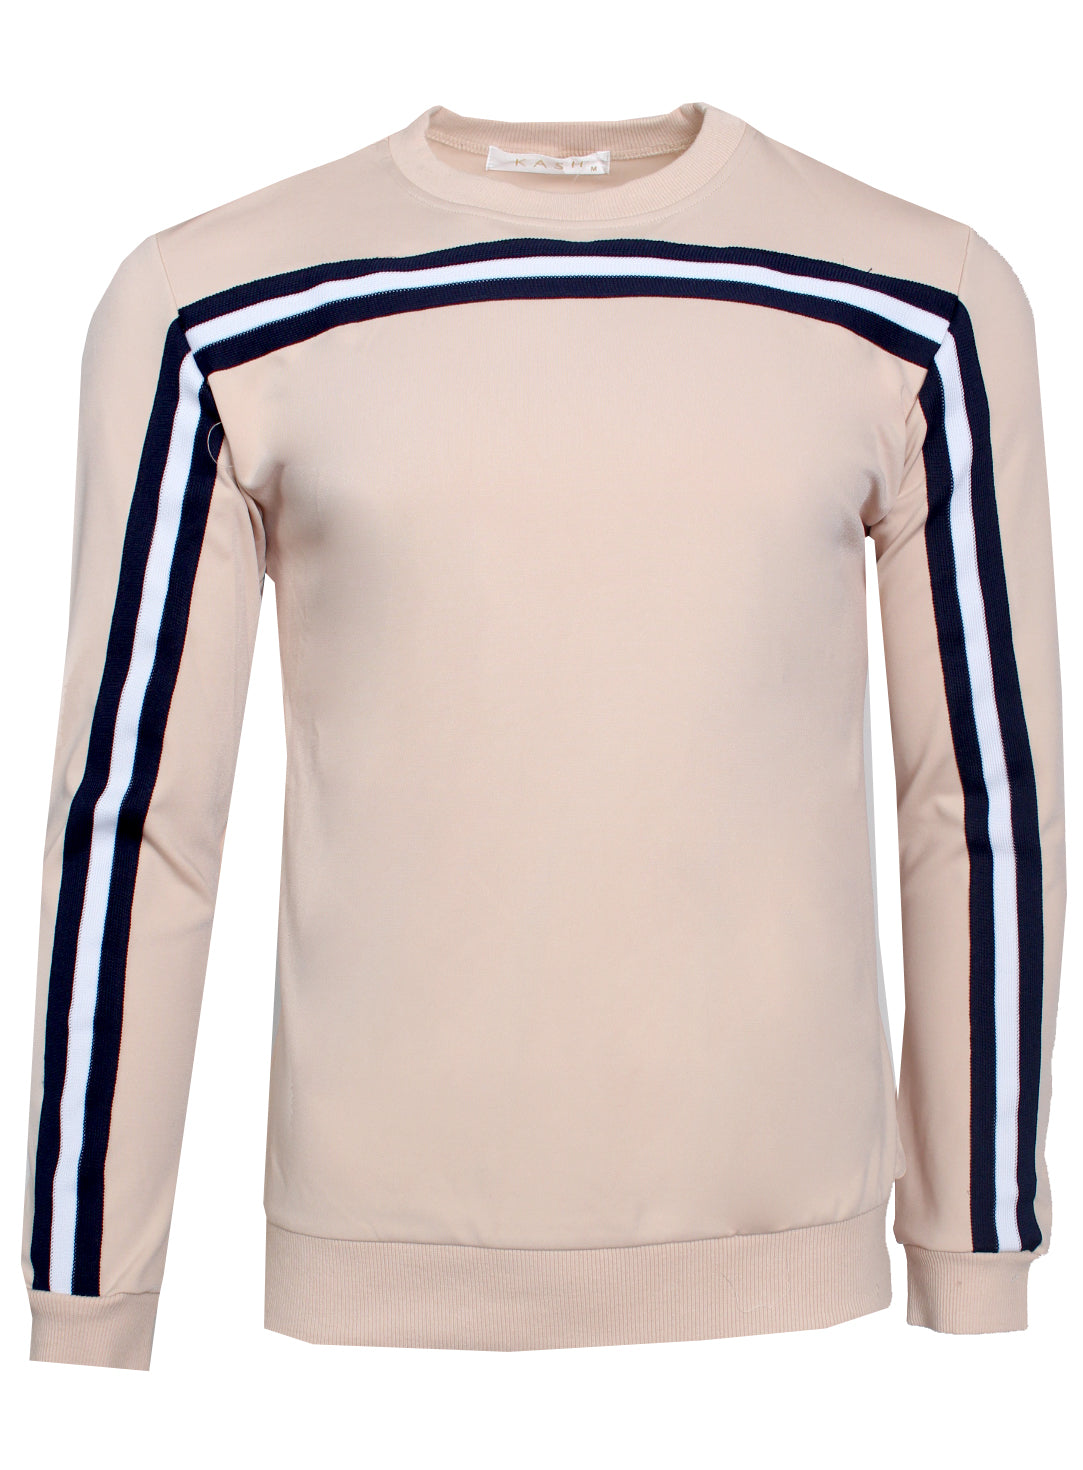 Men's Long Sleeve Crewneck with Black and White Stripes-Tan